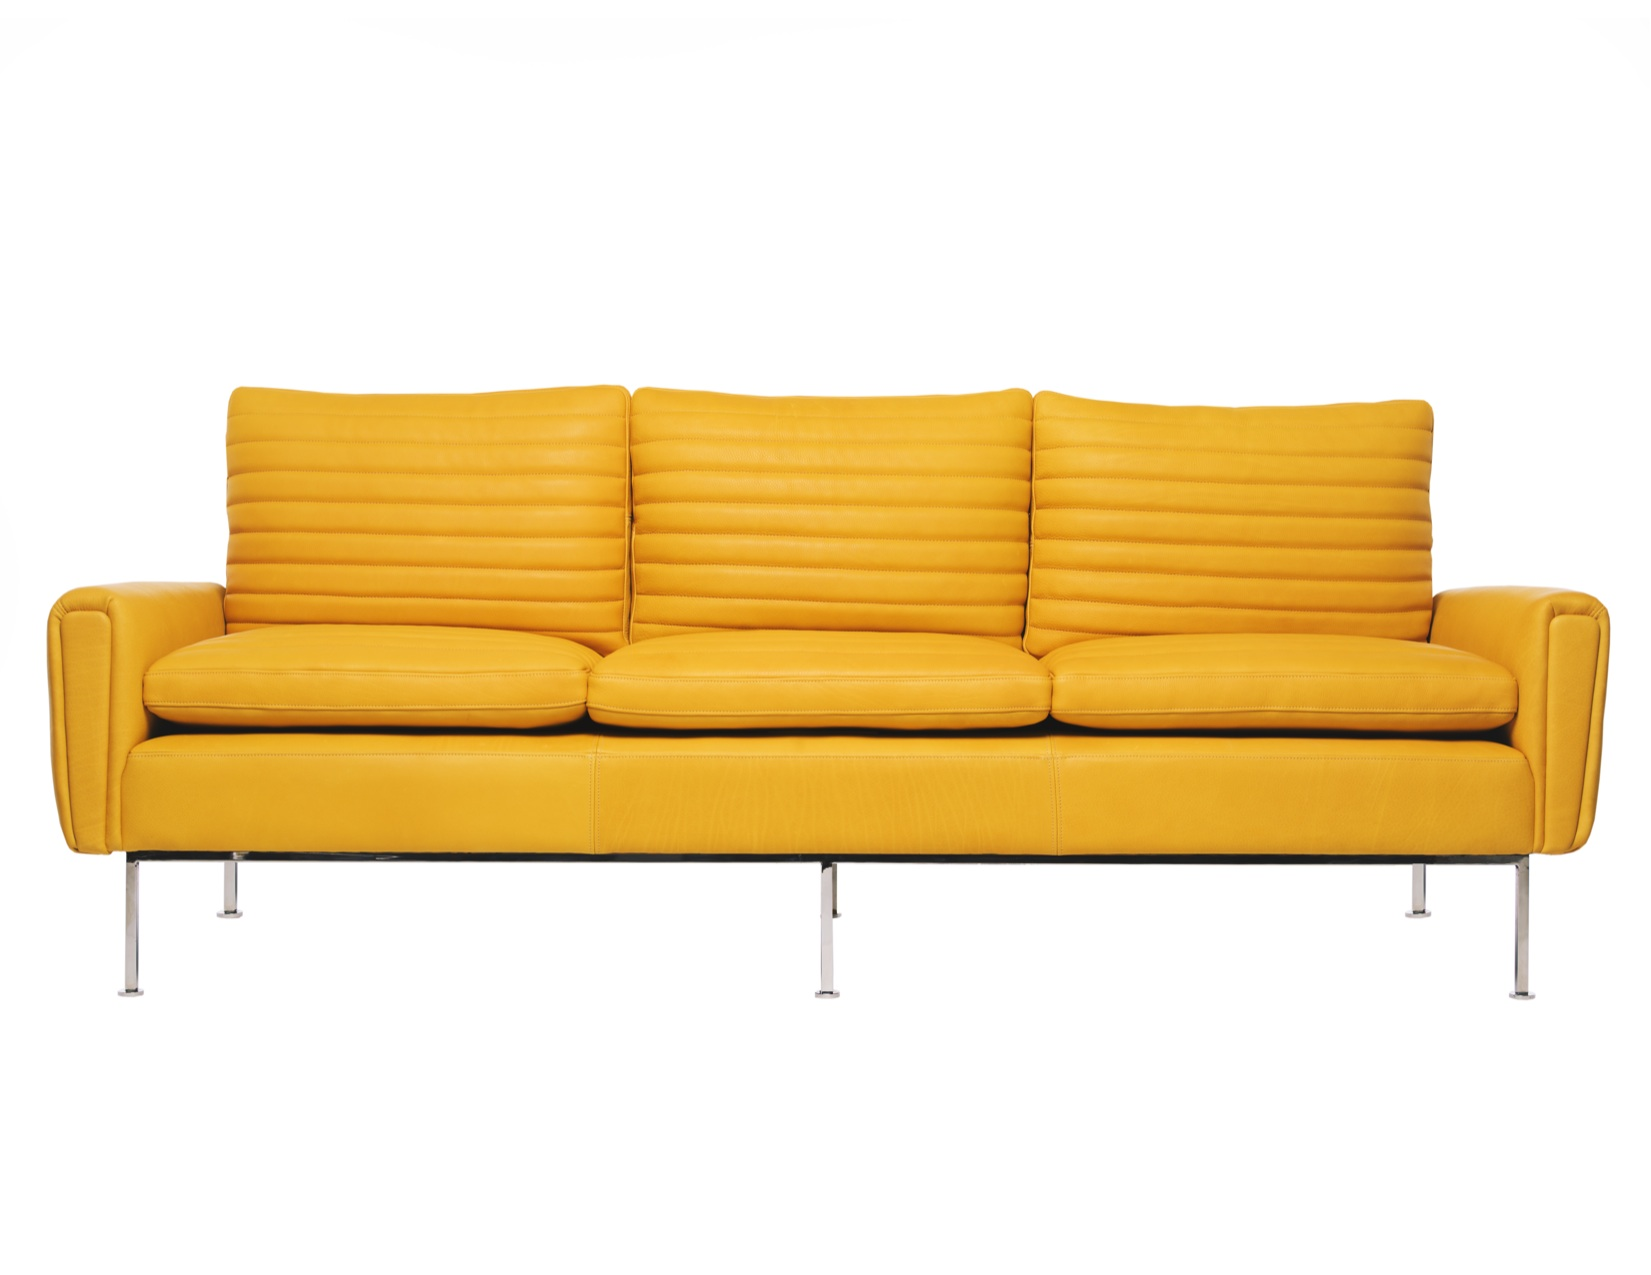 New York Sofas